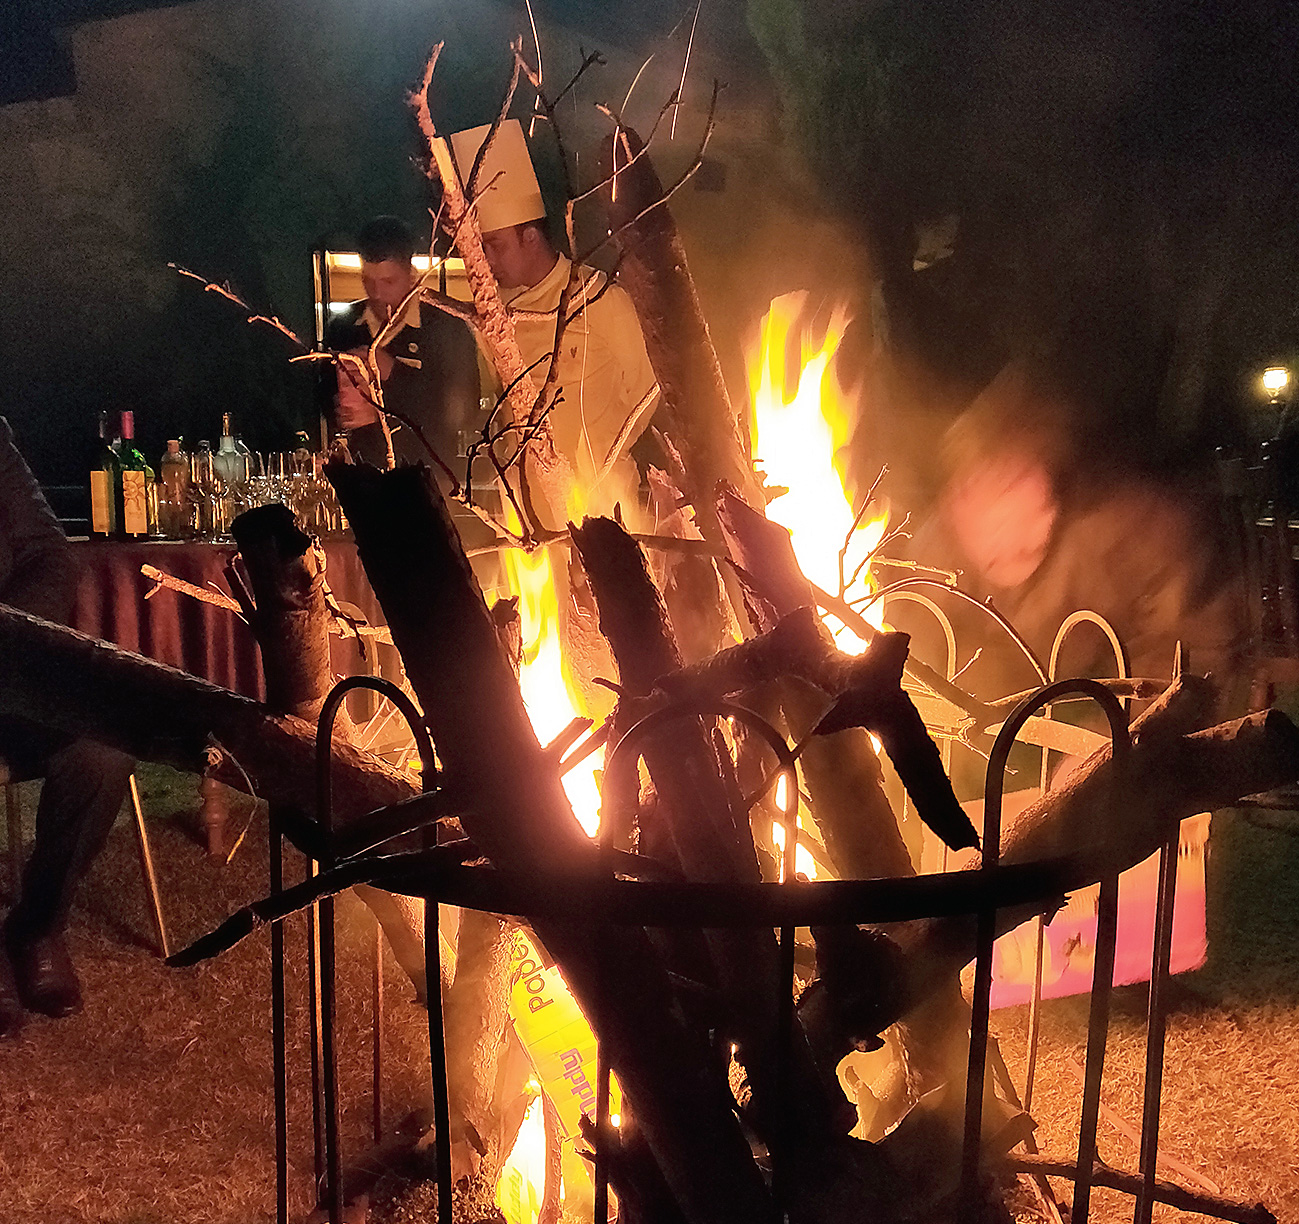 Spooky stories and delicious dinner by the bonfire made for a memorable evening